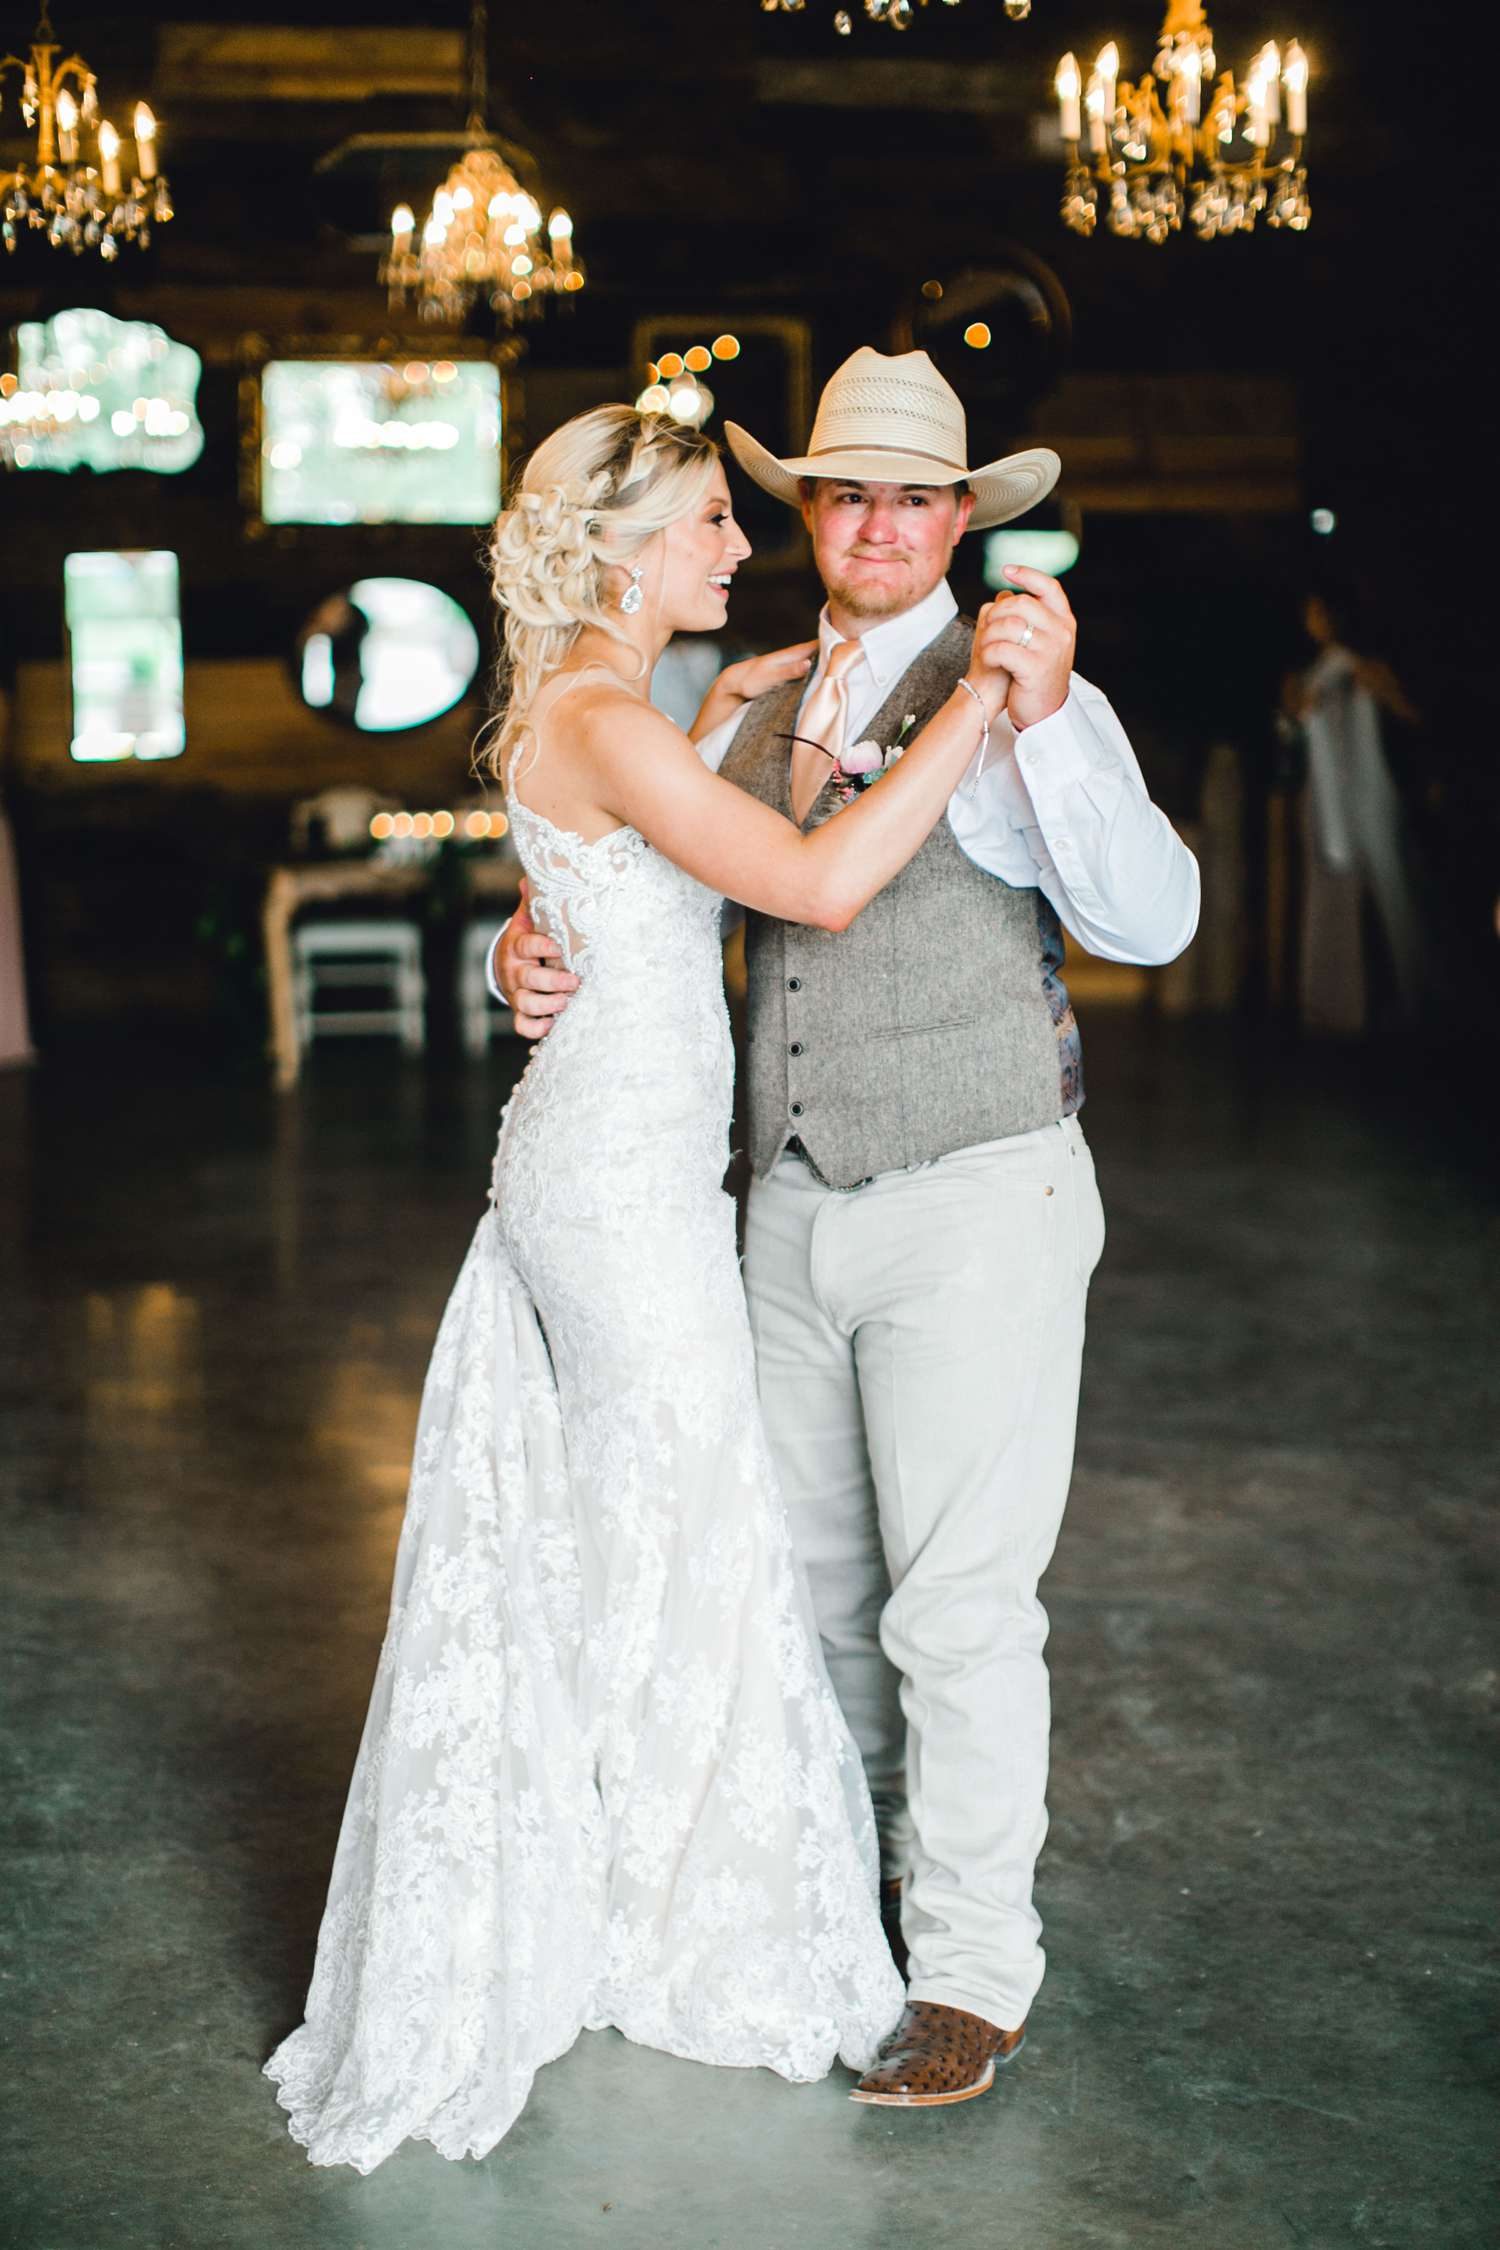 SARAH+TREVOR+BADGETT+SPARROW+CREEK+GRAHAM+TEXAS+ALLEEJ+WEDDINGS_0120.jpg